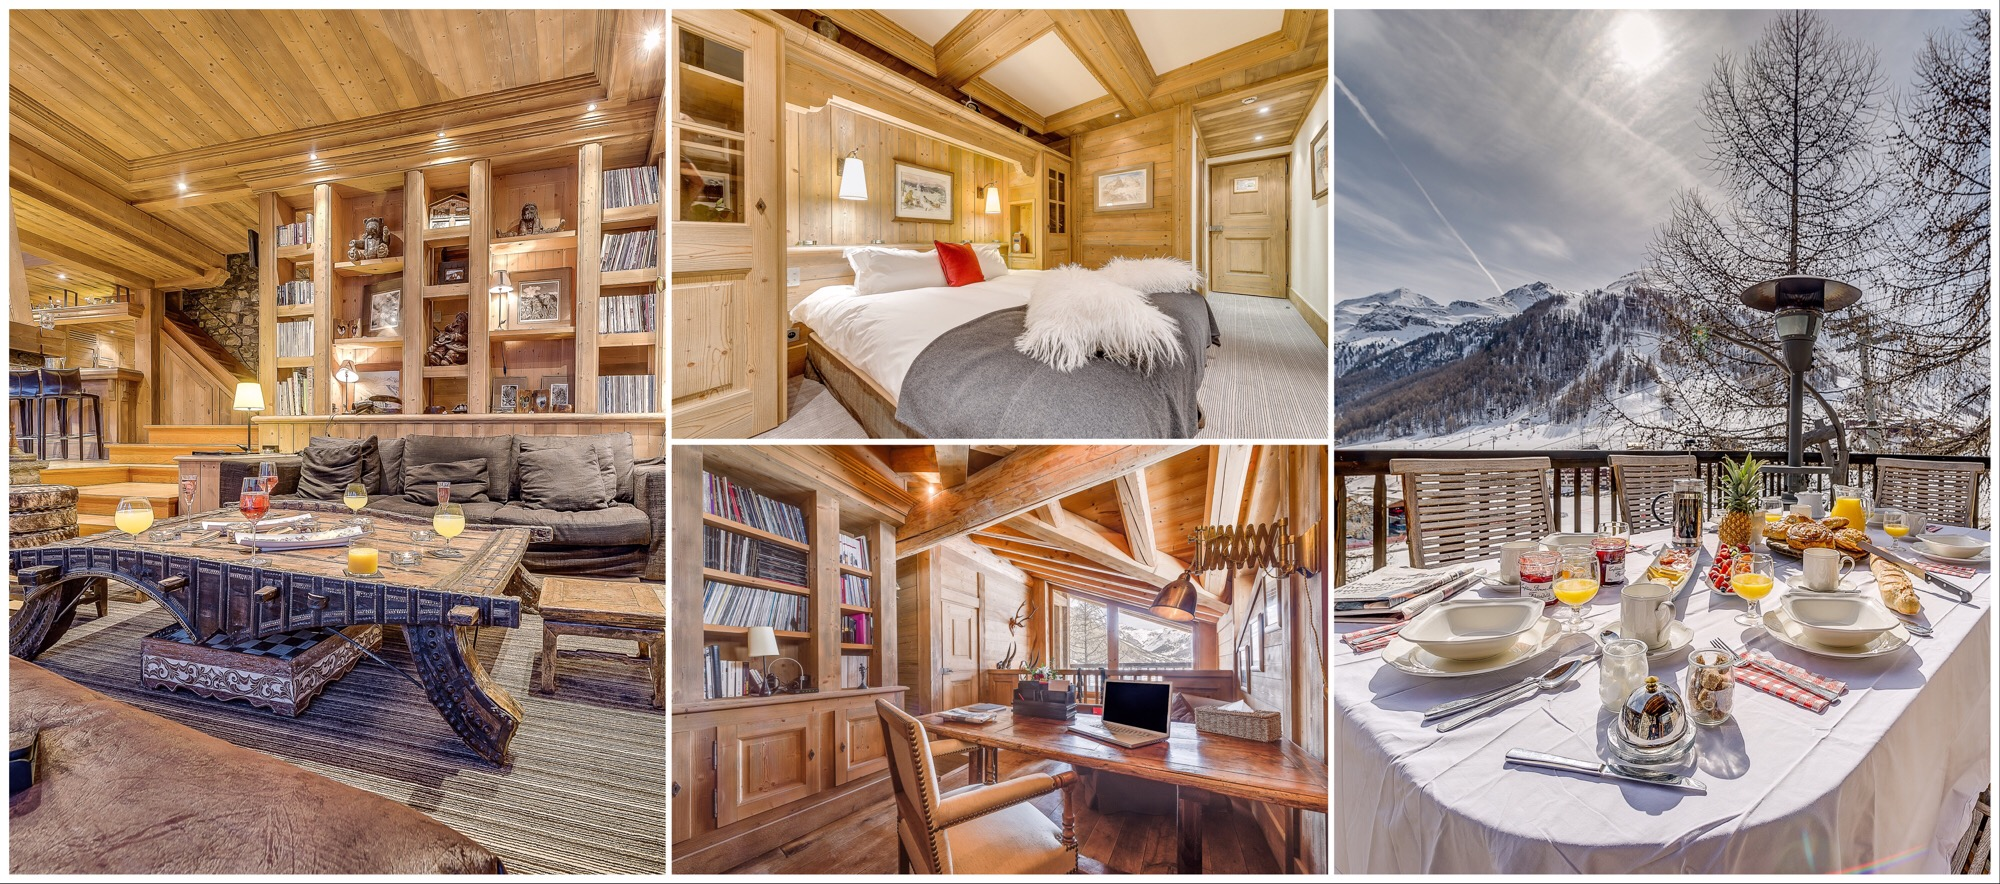 Skichalet Montana, Val d'Isère, Lounge, a Bedroom, Office and Terrace